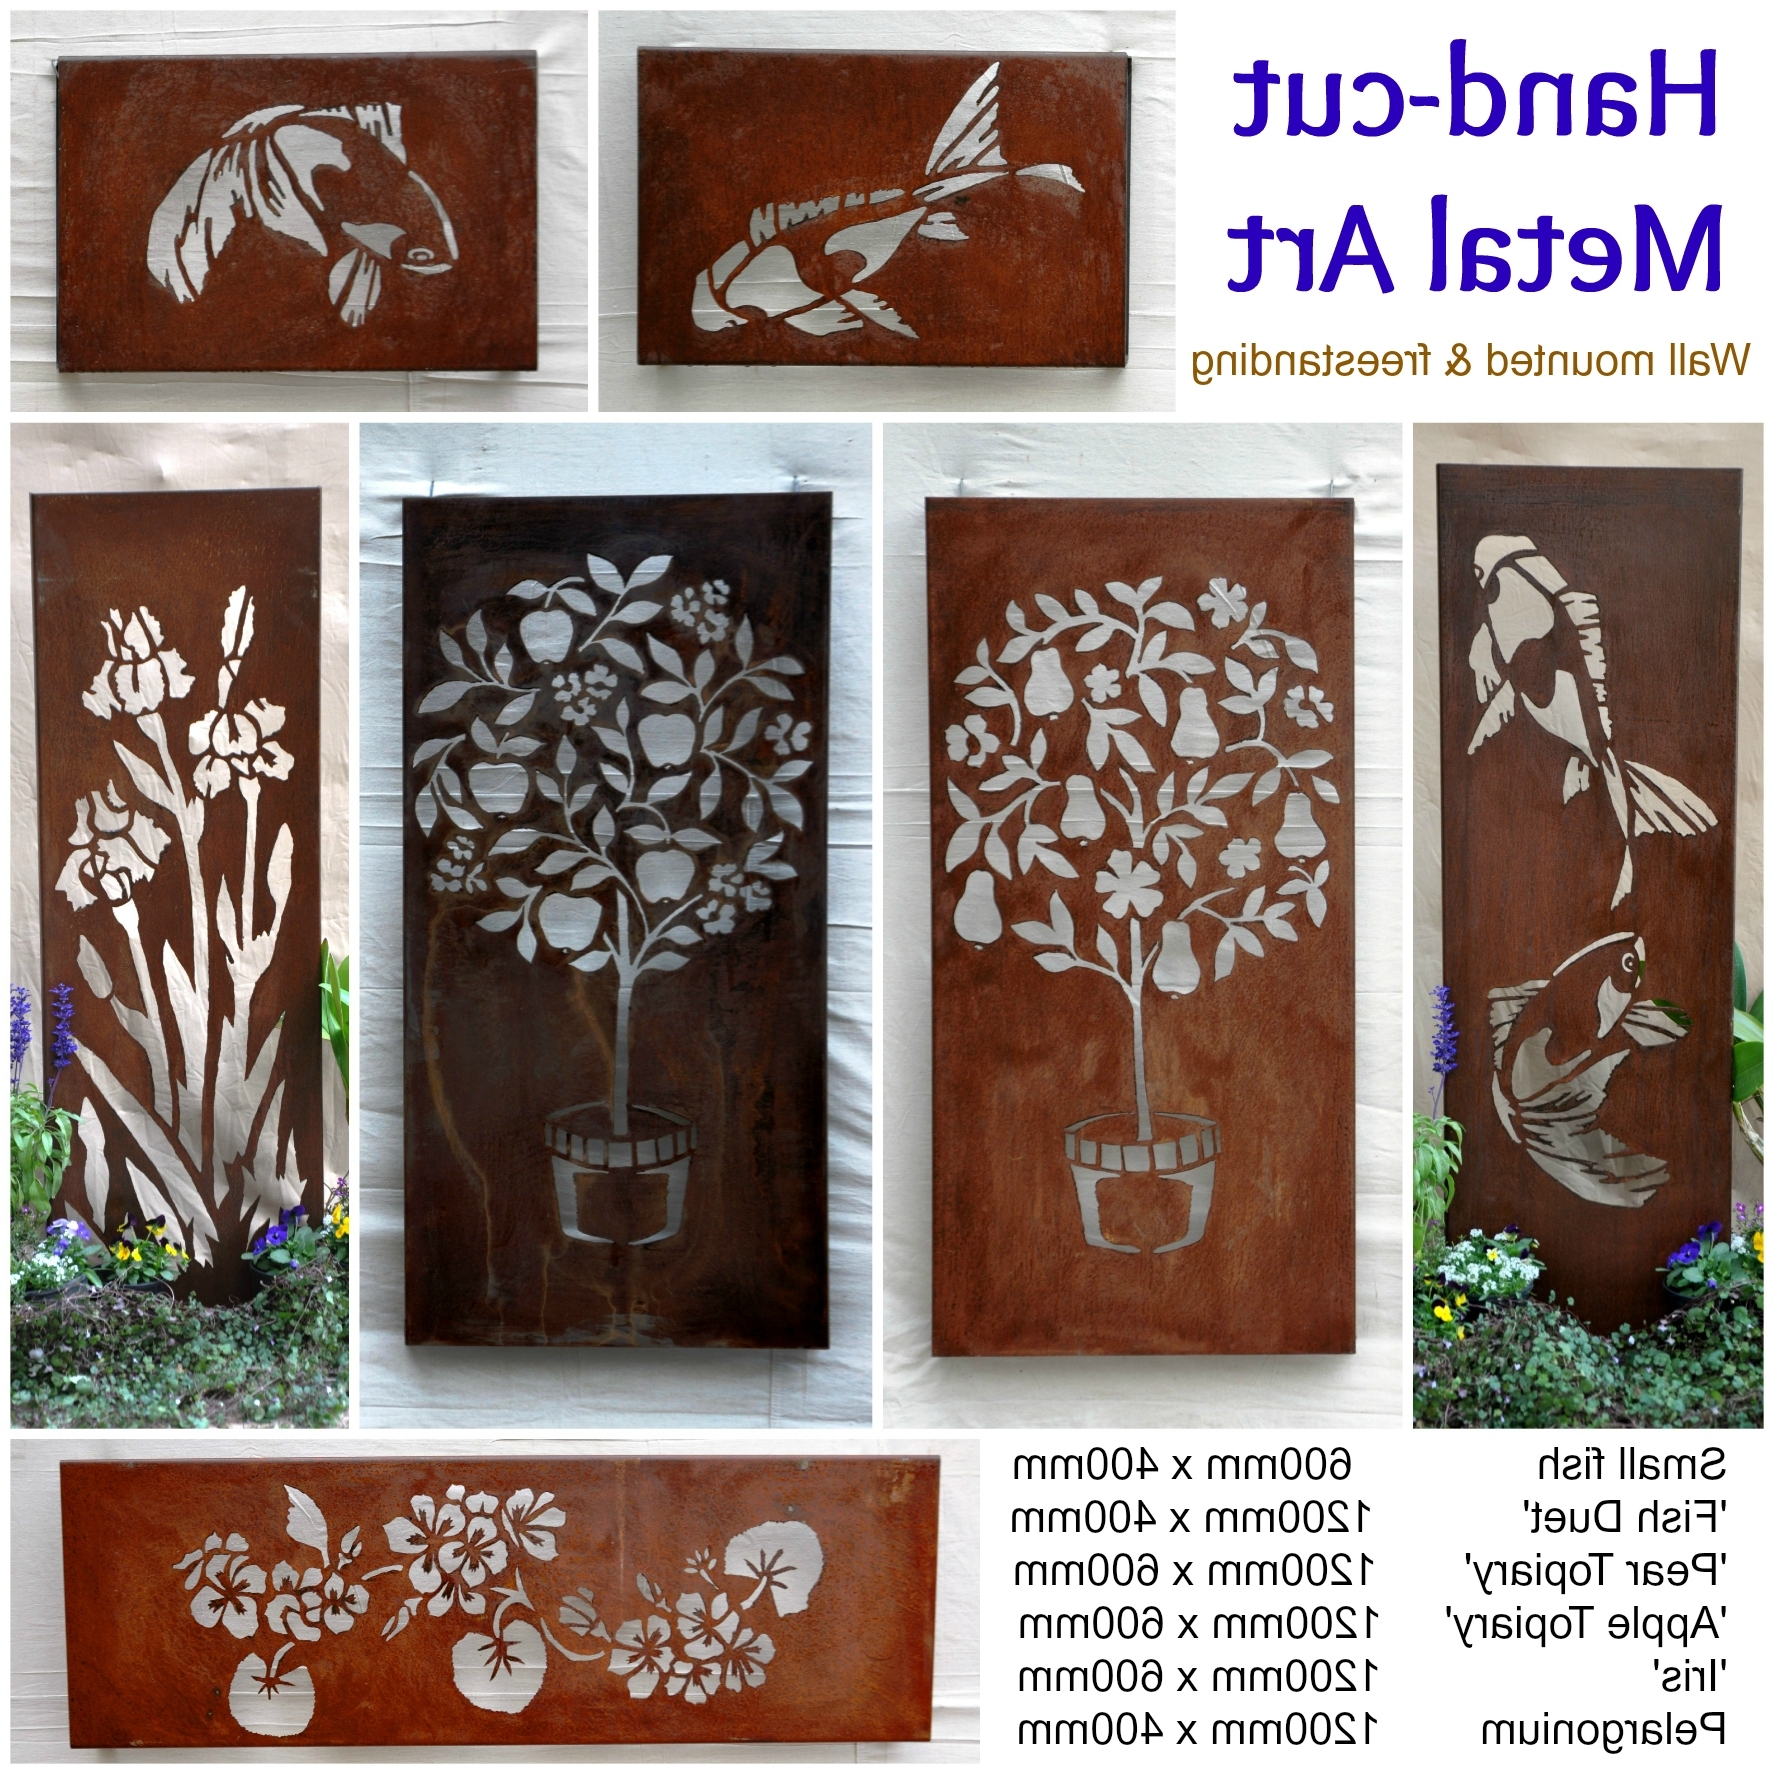 Outdoor Metal Wall Art Intended For Latest Outdoor Metal Wall Art Amazon Decorative Butterfly Horizontal (View 6 of 15)